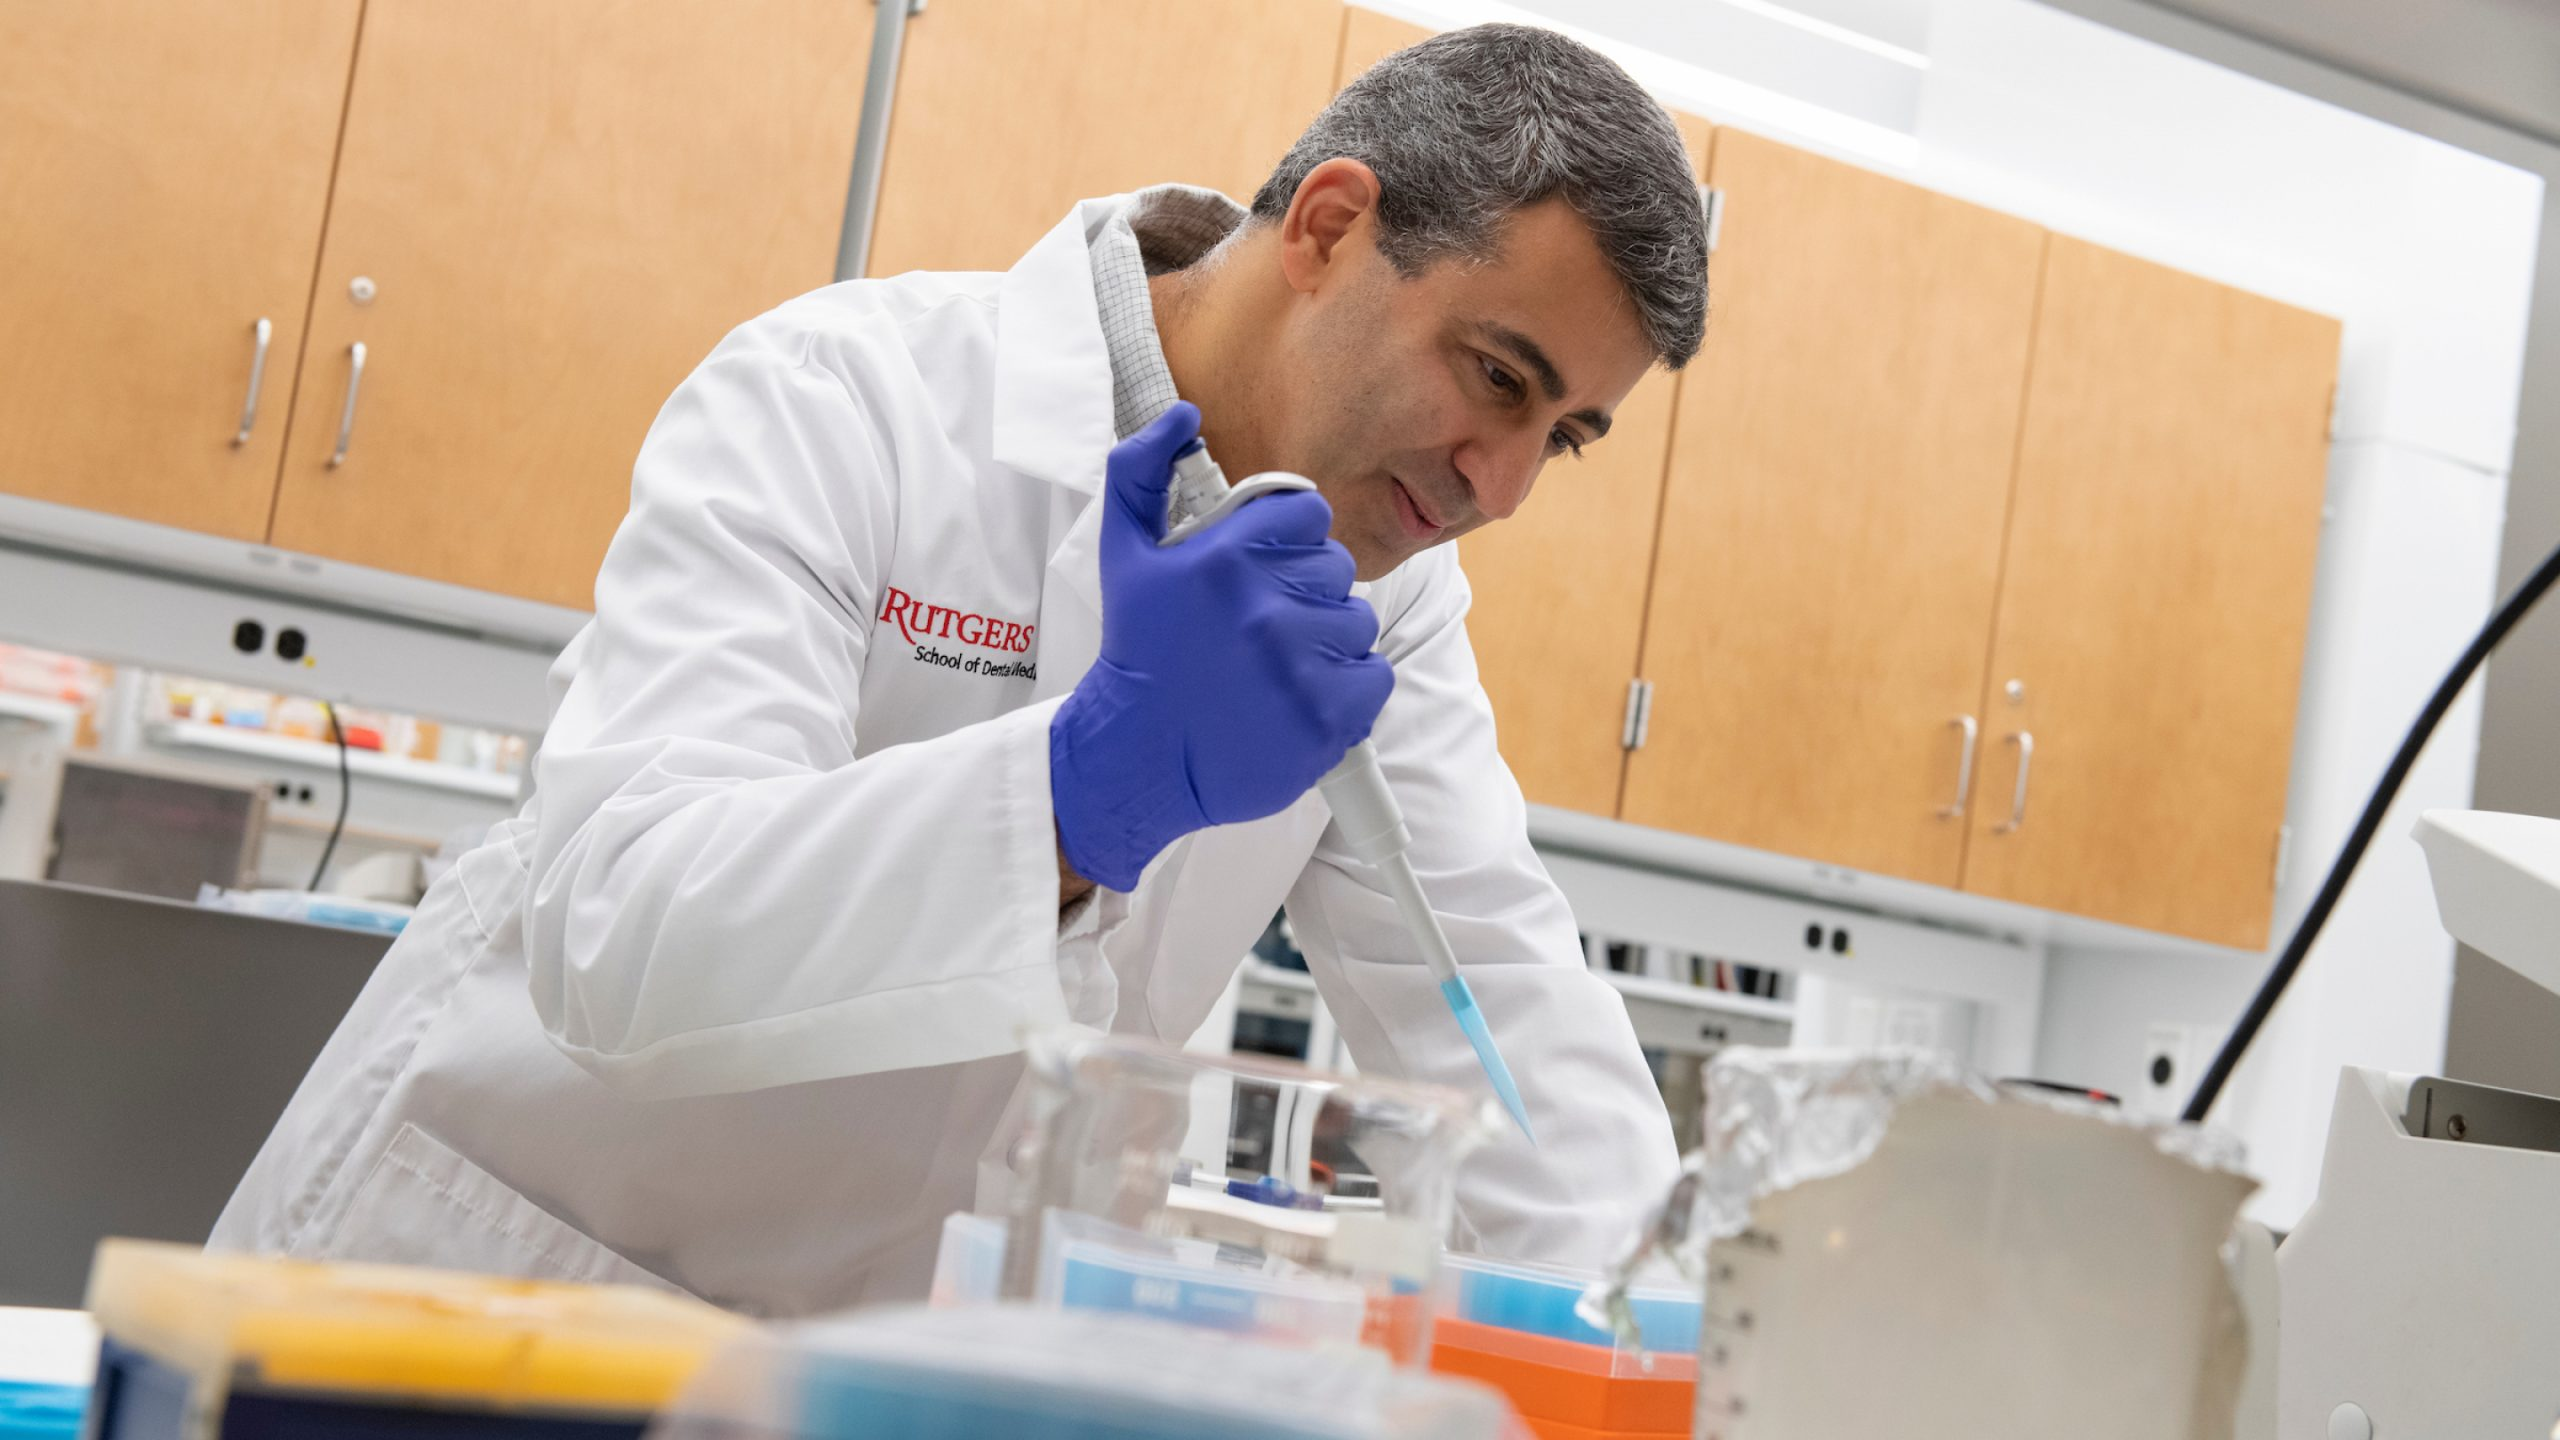 Rutgers School of Dental Medicine researcher Scott Kachlany received U.S. Food and Drug Administration (FDA) approval to begin a phase I clinical trial to treat cancer patients with a therapy based on Kachlany's discovery that a protein produced by an oral bacterium can kill leukemia and lymphoma cells.